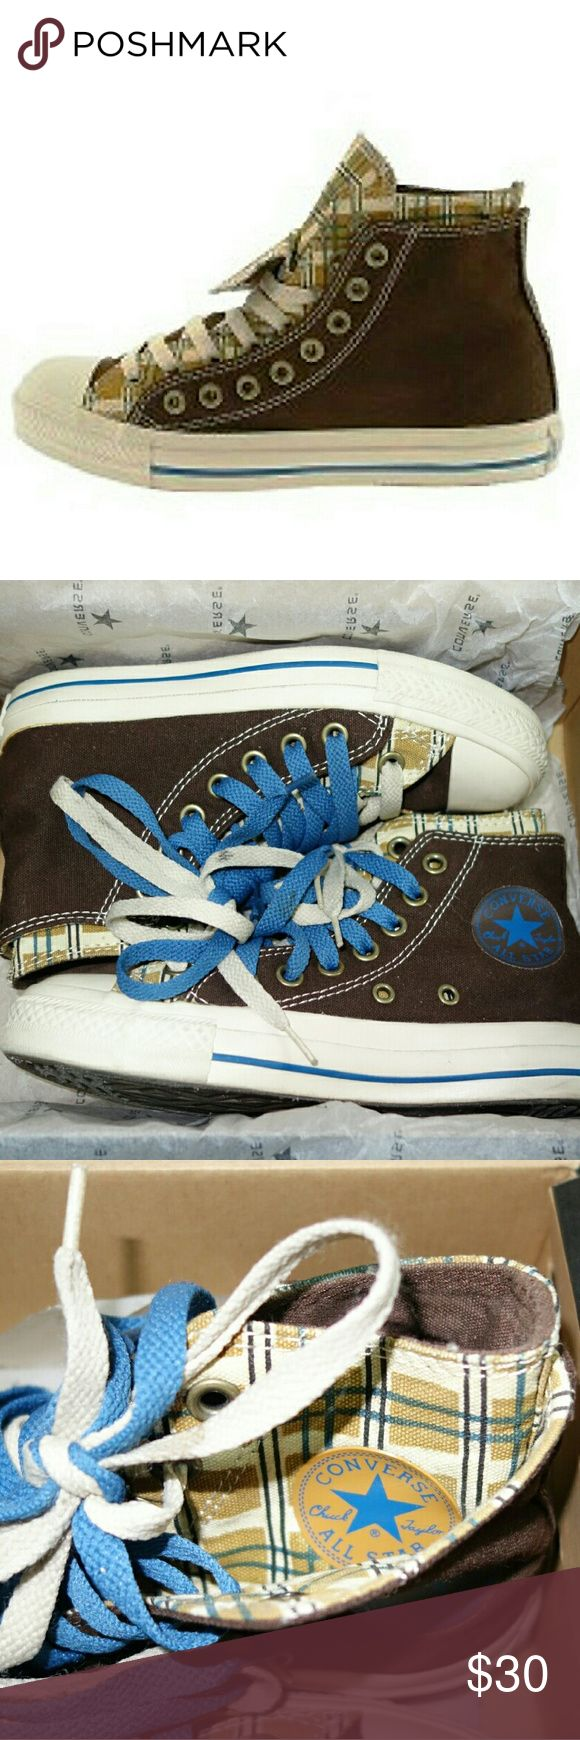 Converse Chuck Taylor All Star double layer & lace ?       Great Condition!  ?       Color: Brown, tan, blue  ?       Size: Men?s 3/W omens 5  ?       Double layer & double laces!  ?       High-tops Plaid  ?       Comes with box   ?       No longer sold anywhere ? Retail price $52.00 Now on SALE! Converse Shoes Sneakers